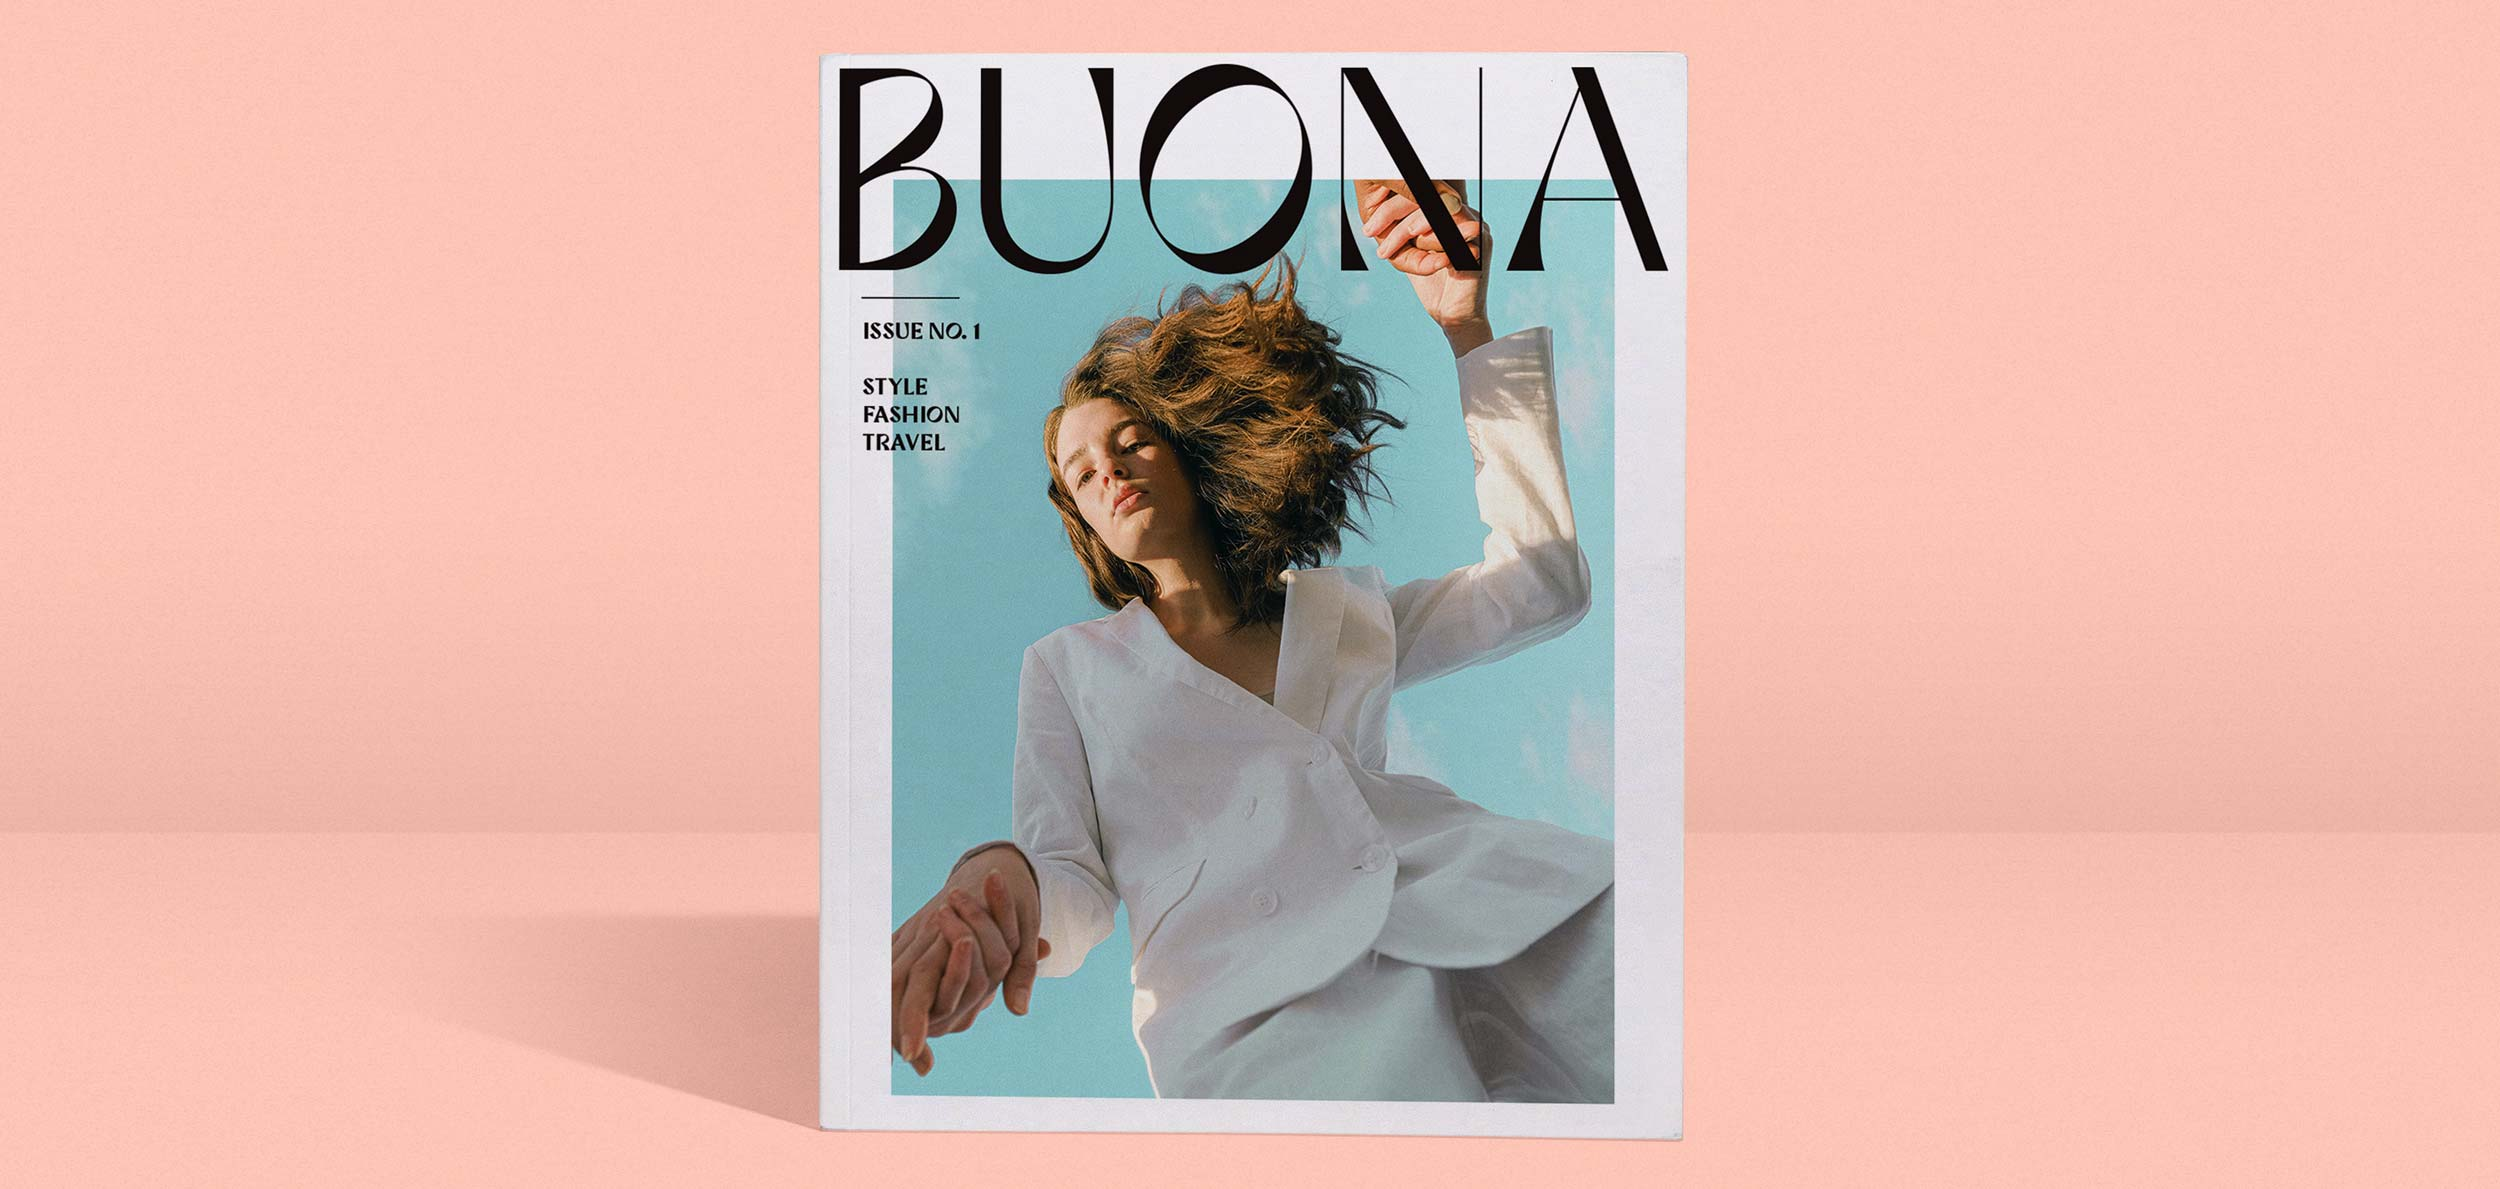 Buona Display: Stylish, Quirky, Expressive typeface from Outfit Branding & Design